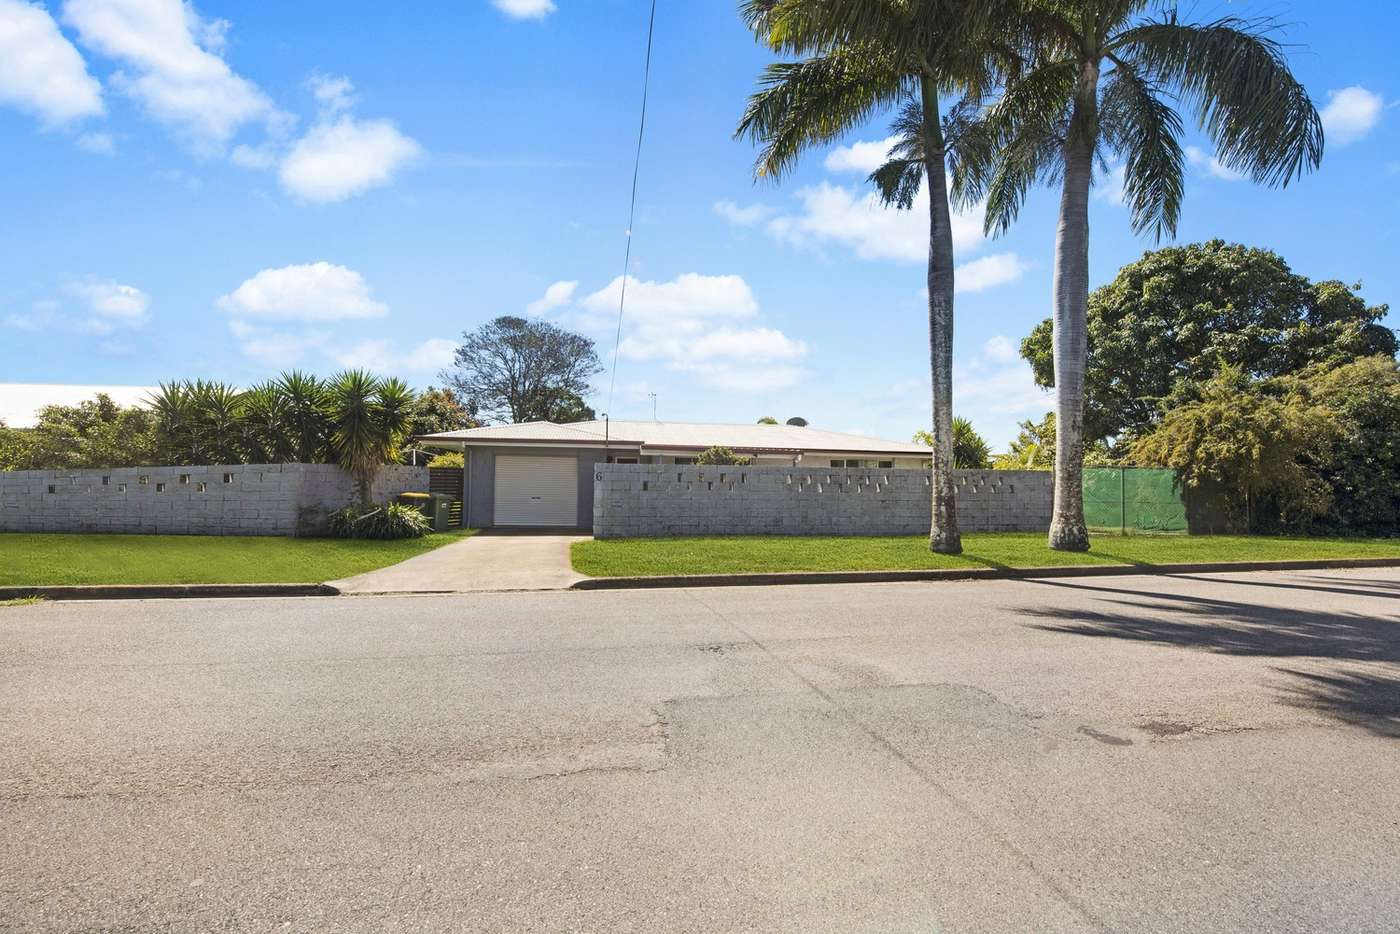 Main view of Homely house listing, 6 Holmes Drive, Beaconsfield QLD 4740